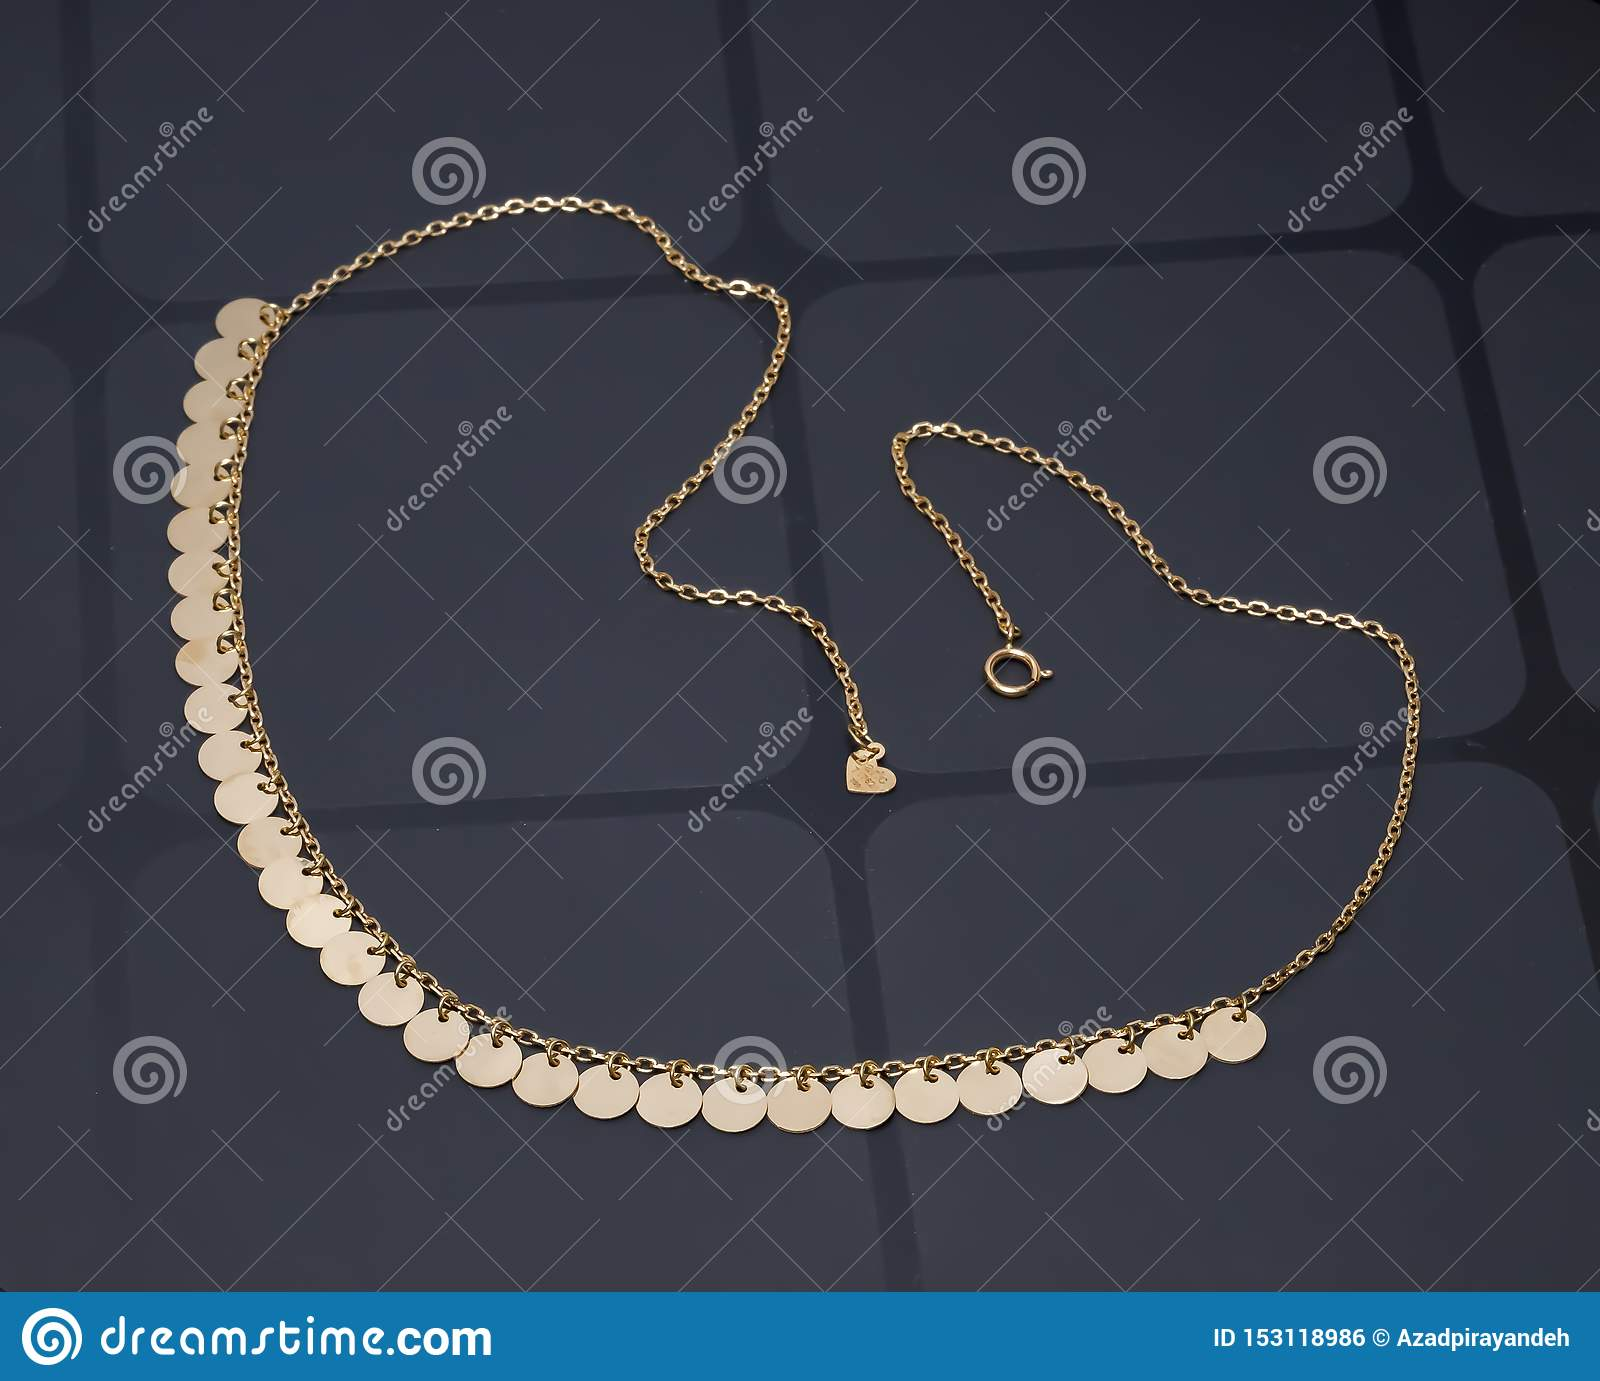 Gold accessories for beauty women